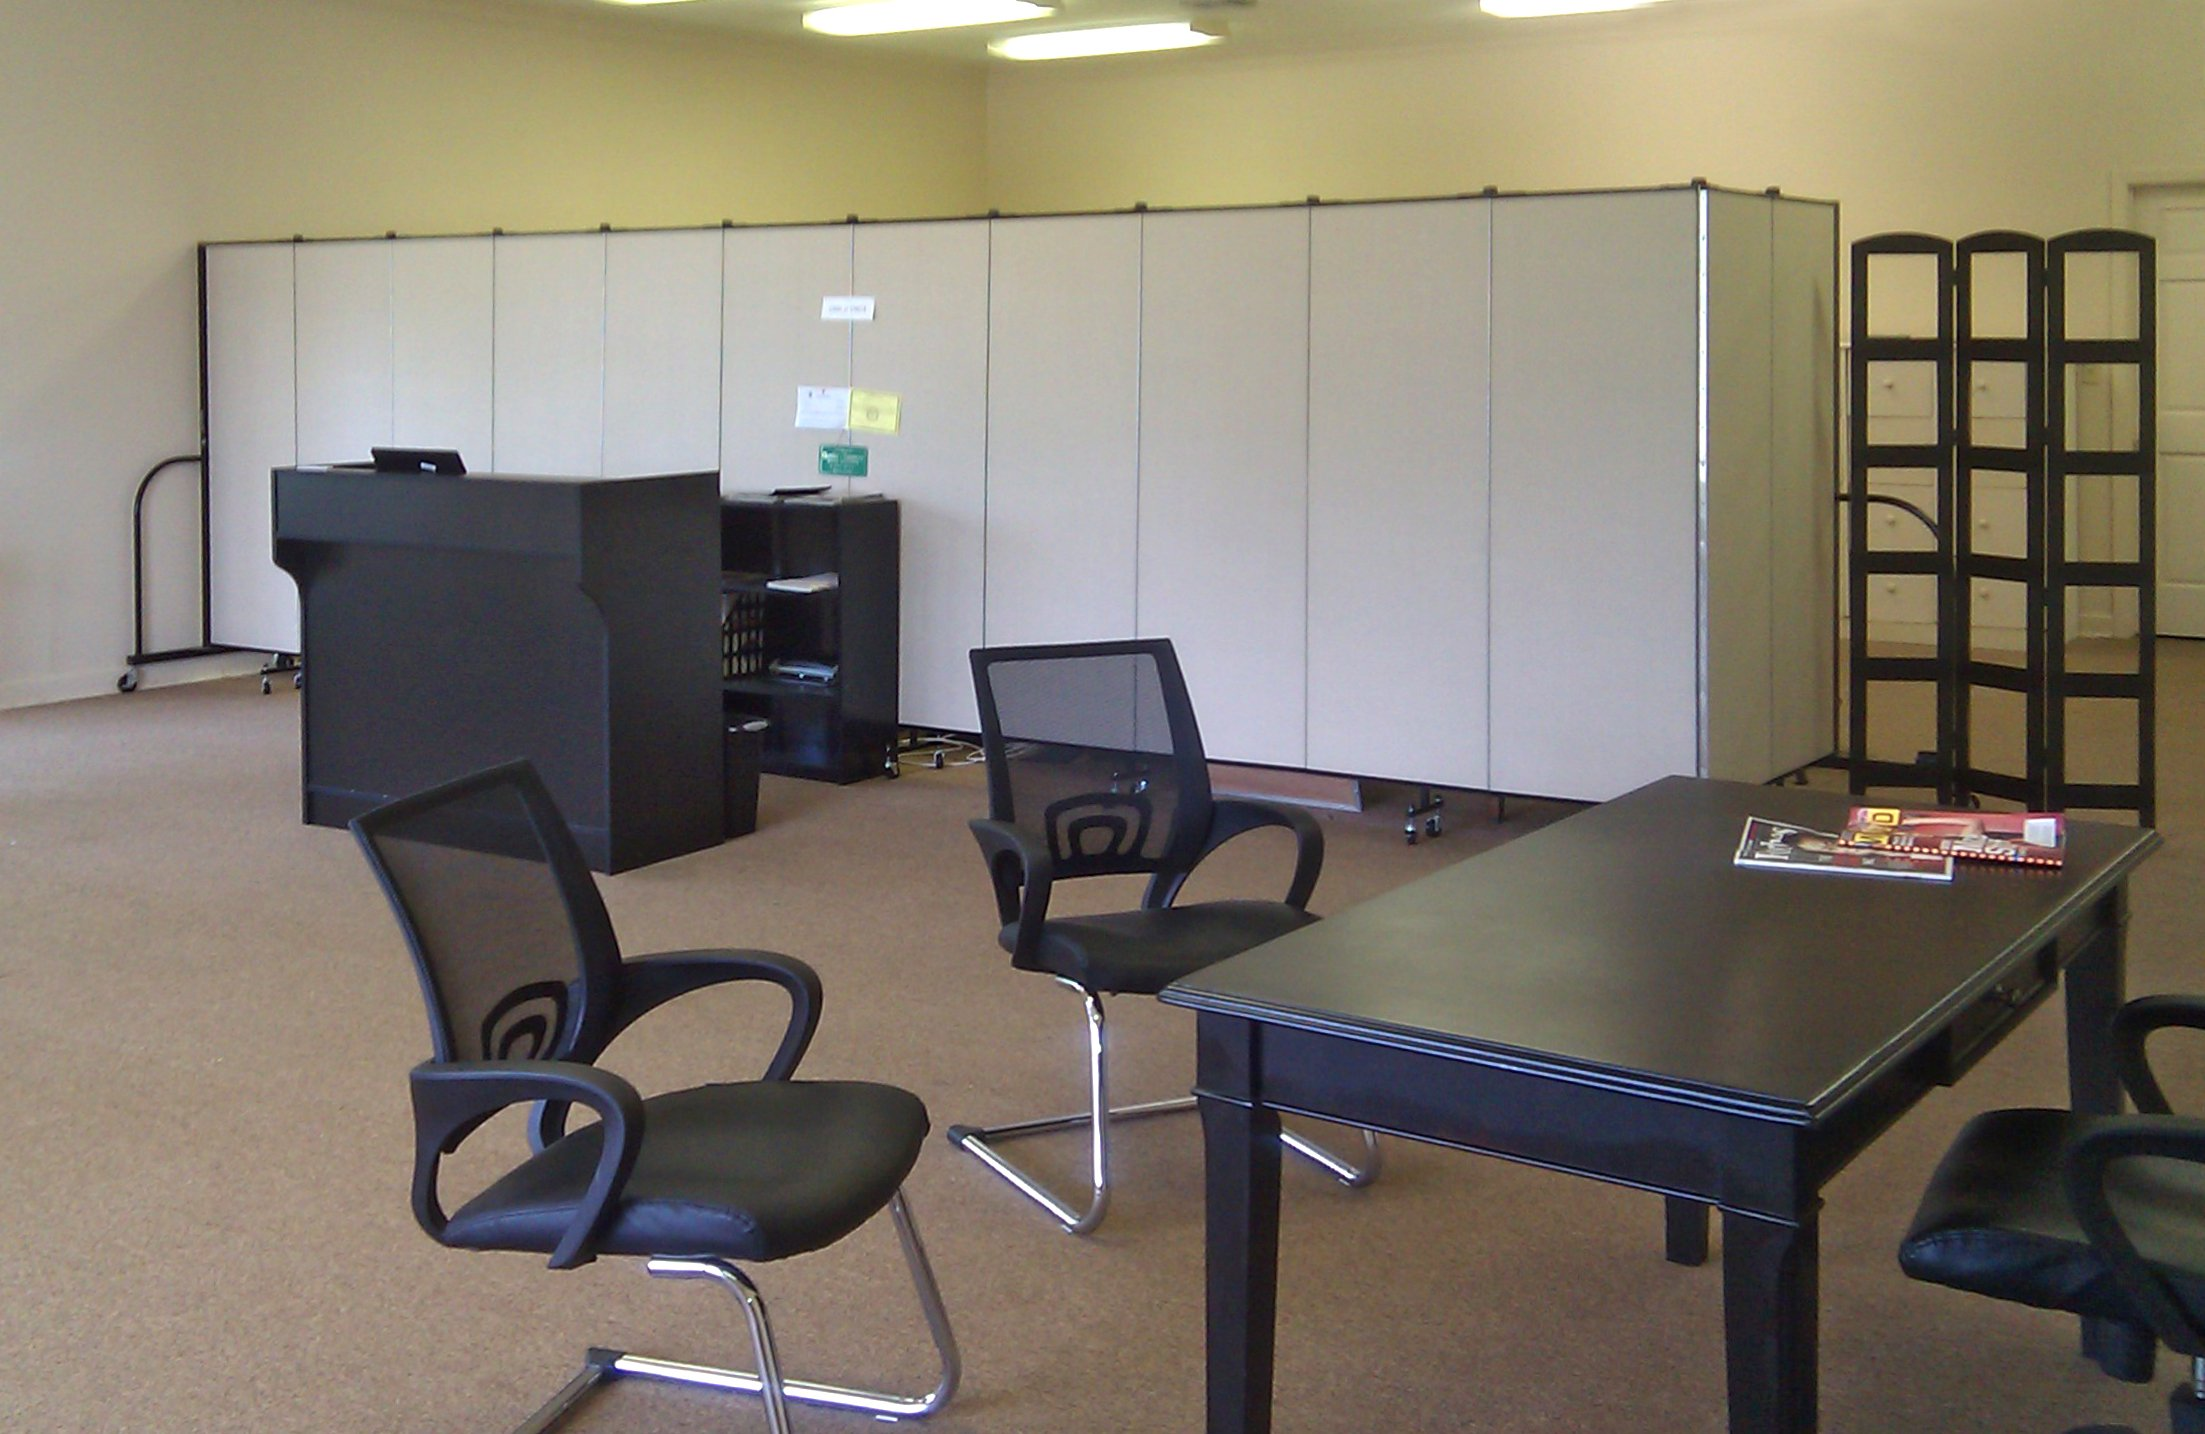 A room divider is used to create private office in the rear of open office space